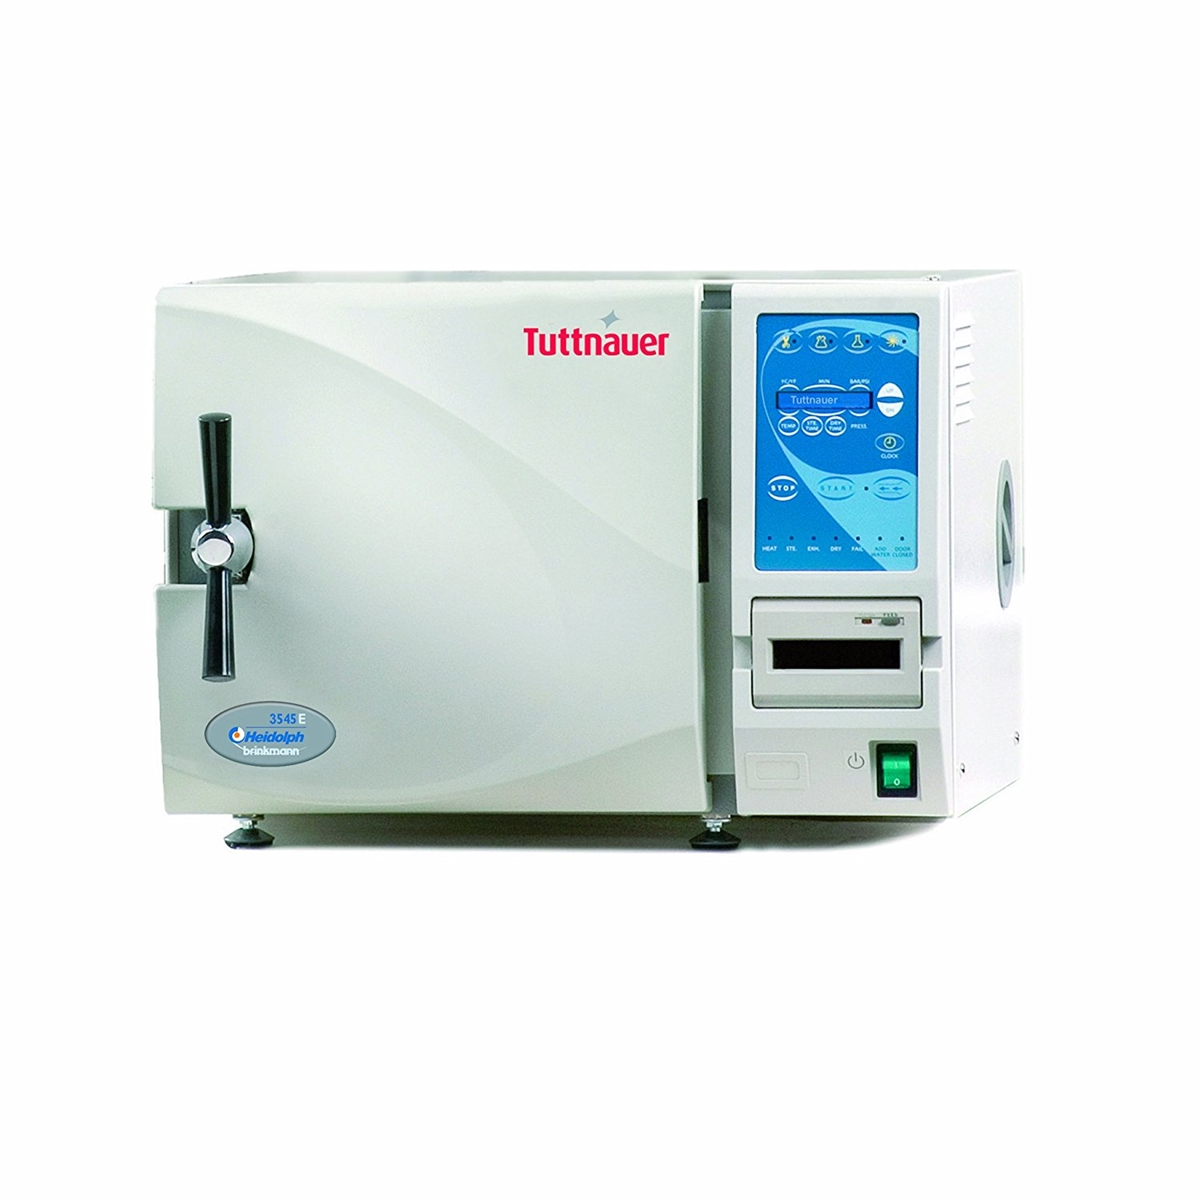 Heidolph Tuttnauer 3545E Electronic Autoclave